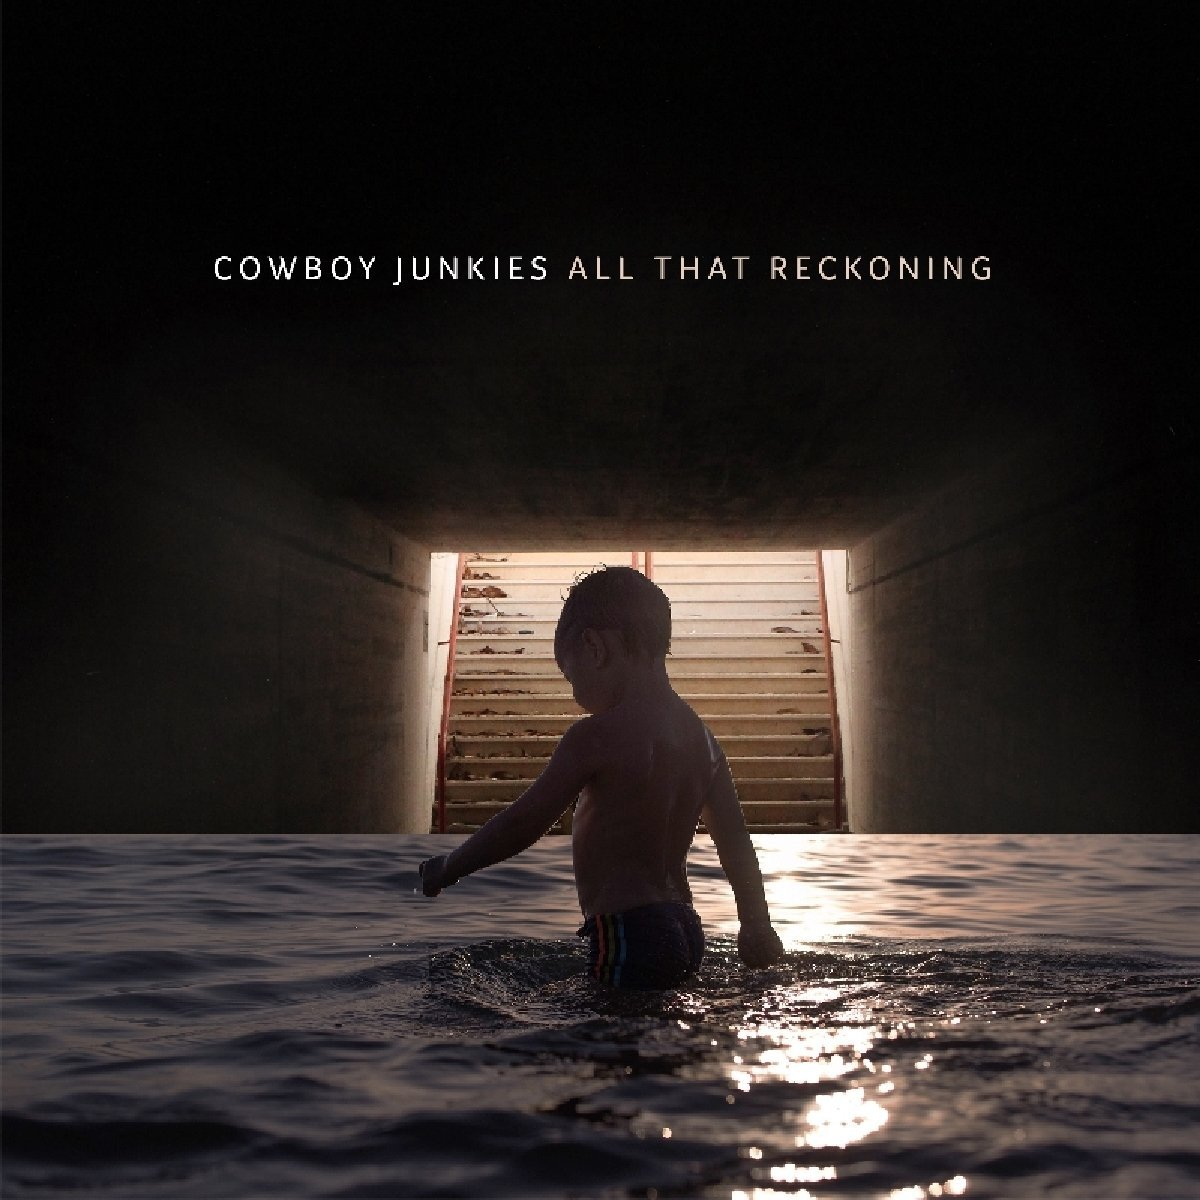 COWBOY JUNKIES - ALL THAT RECKONING (CD)